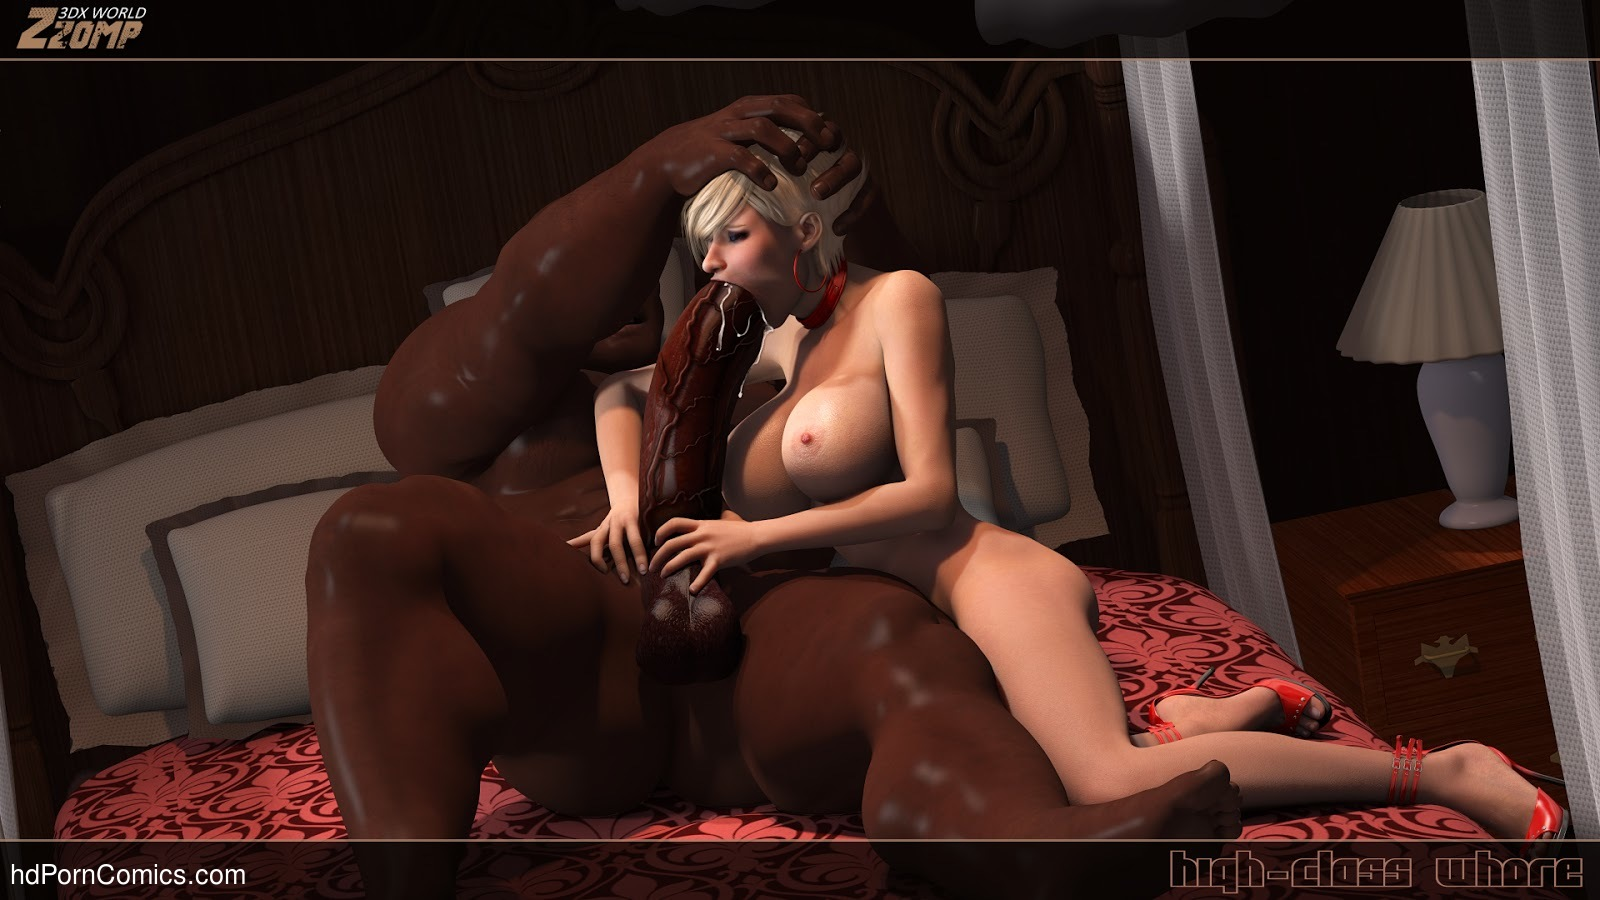 3D COMICS-Zzomp- High-Class Whore 24 free sex comic